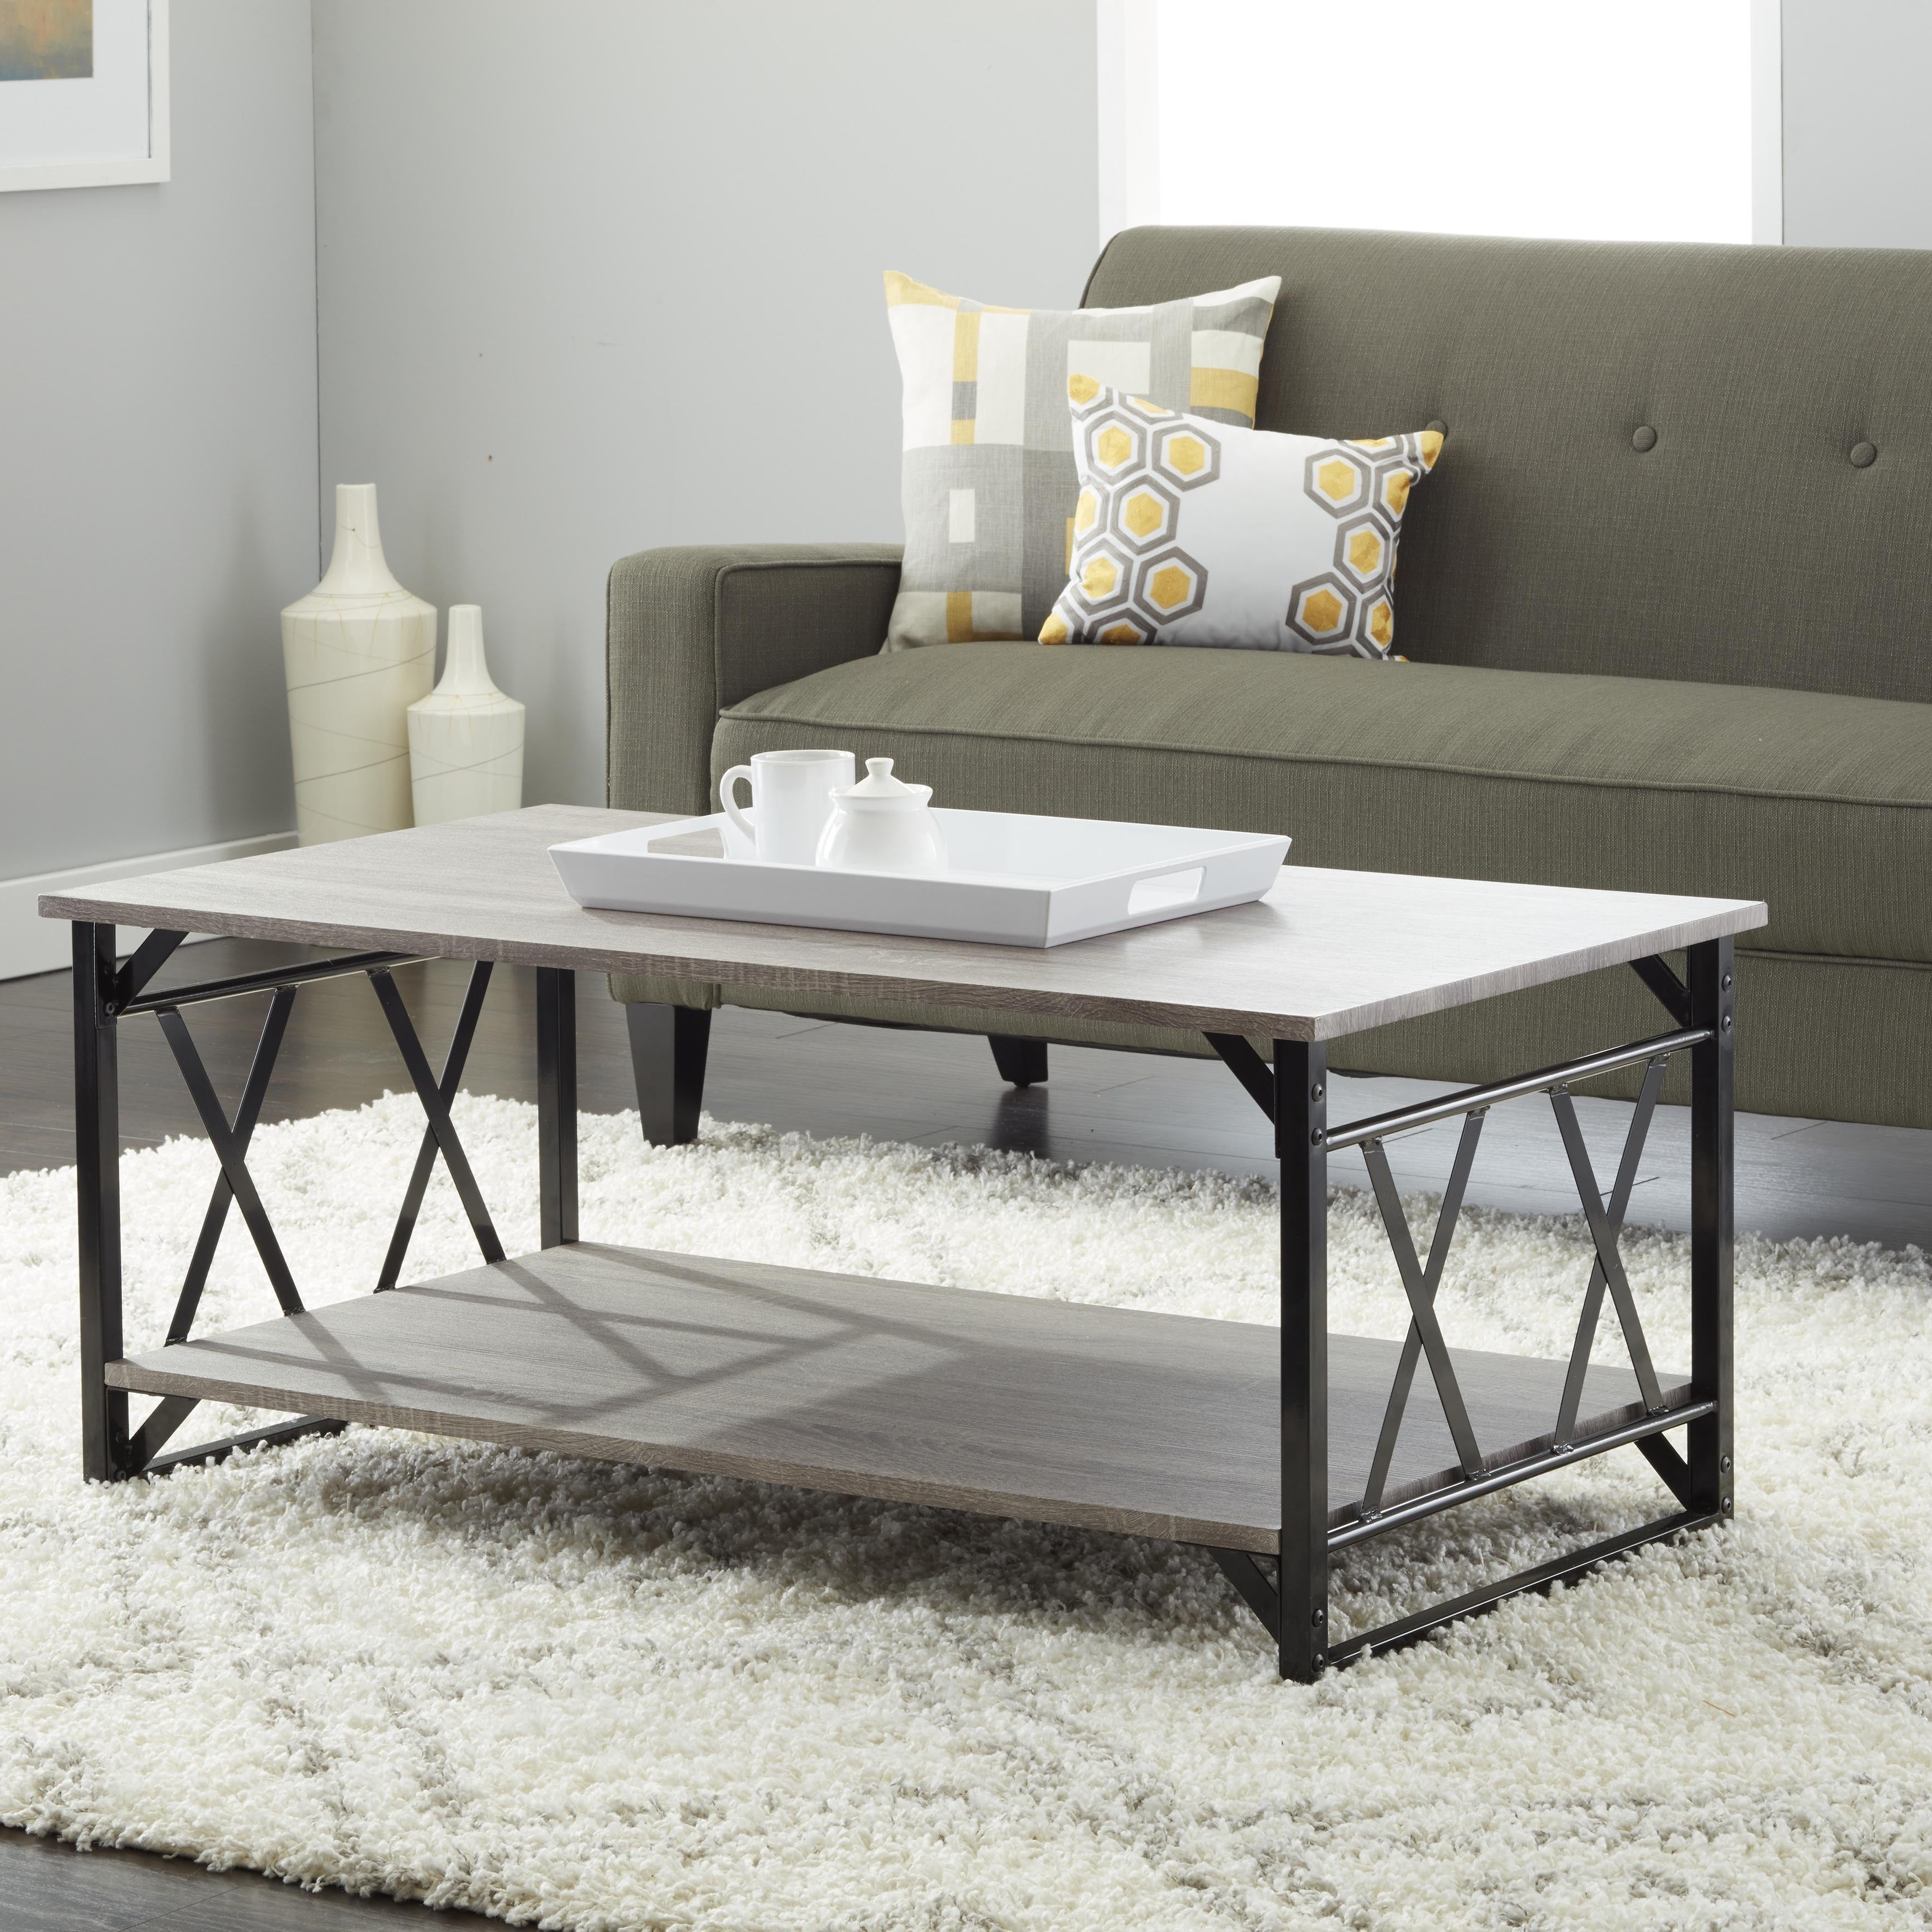 Most Recently Released The Gray Barn Kujawa Metal X Coffee Tables – 40 X 22 X 18h Within Reclaimed Style Grey Coffee Table With Double 'x' Frame (View 17 of 20)